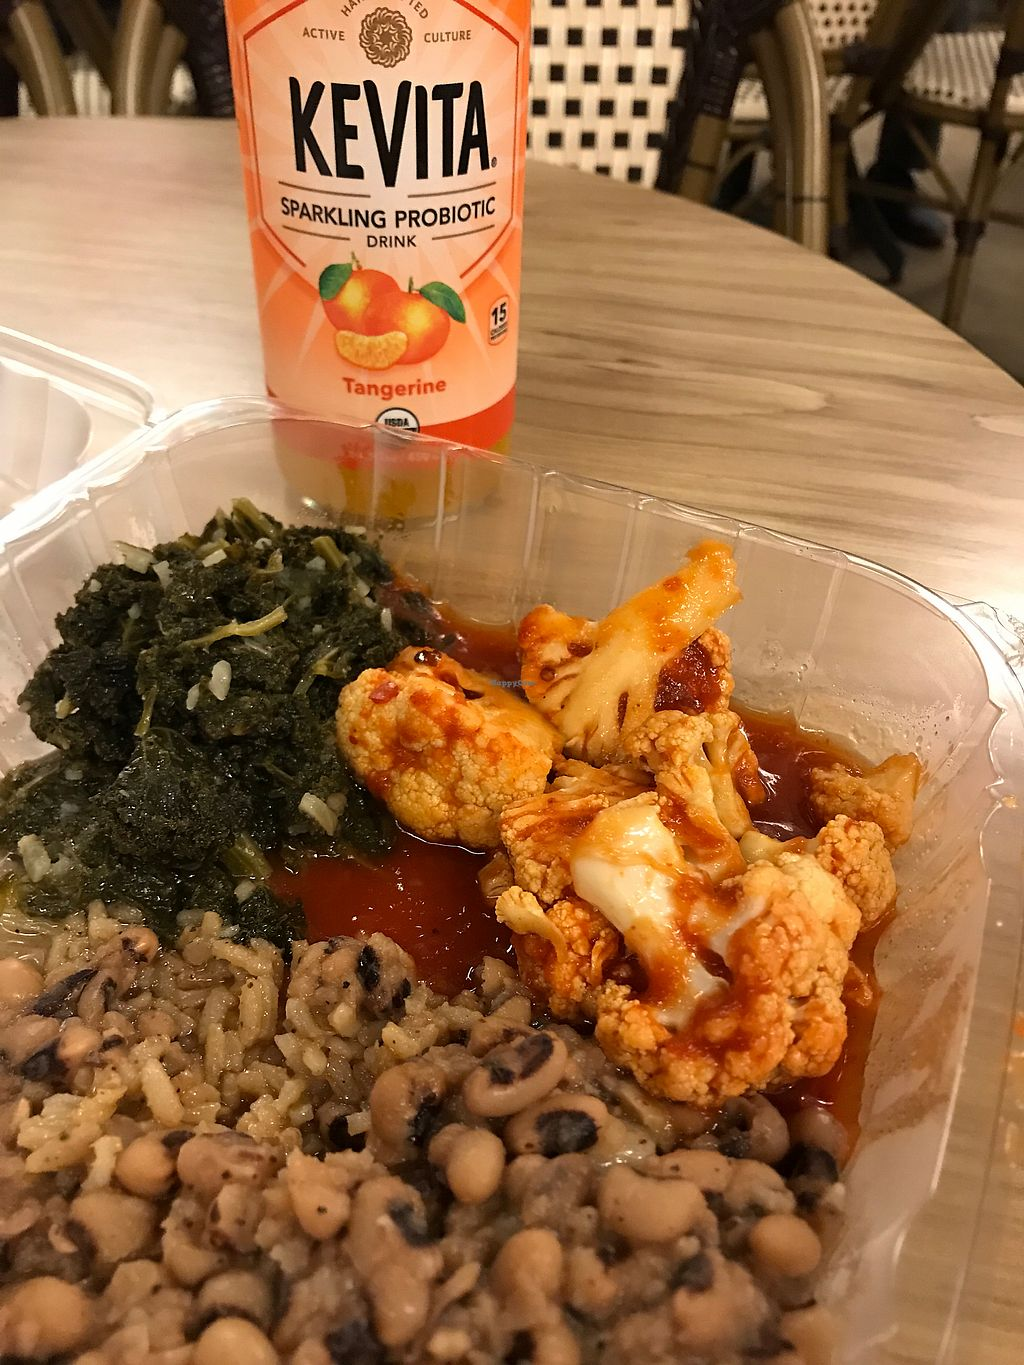 """Photo of Vegan Now  by <a href=""""/members/profile/TylerMayoras"""">TylerMayoras</a> <br/>Buffalo Cauliflower, with rice and beans! <br/> February 28, 2018  - <a href='/contact/abuse/image/71615/364955'>Report</a>"""